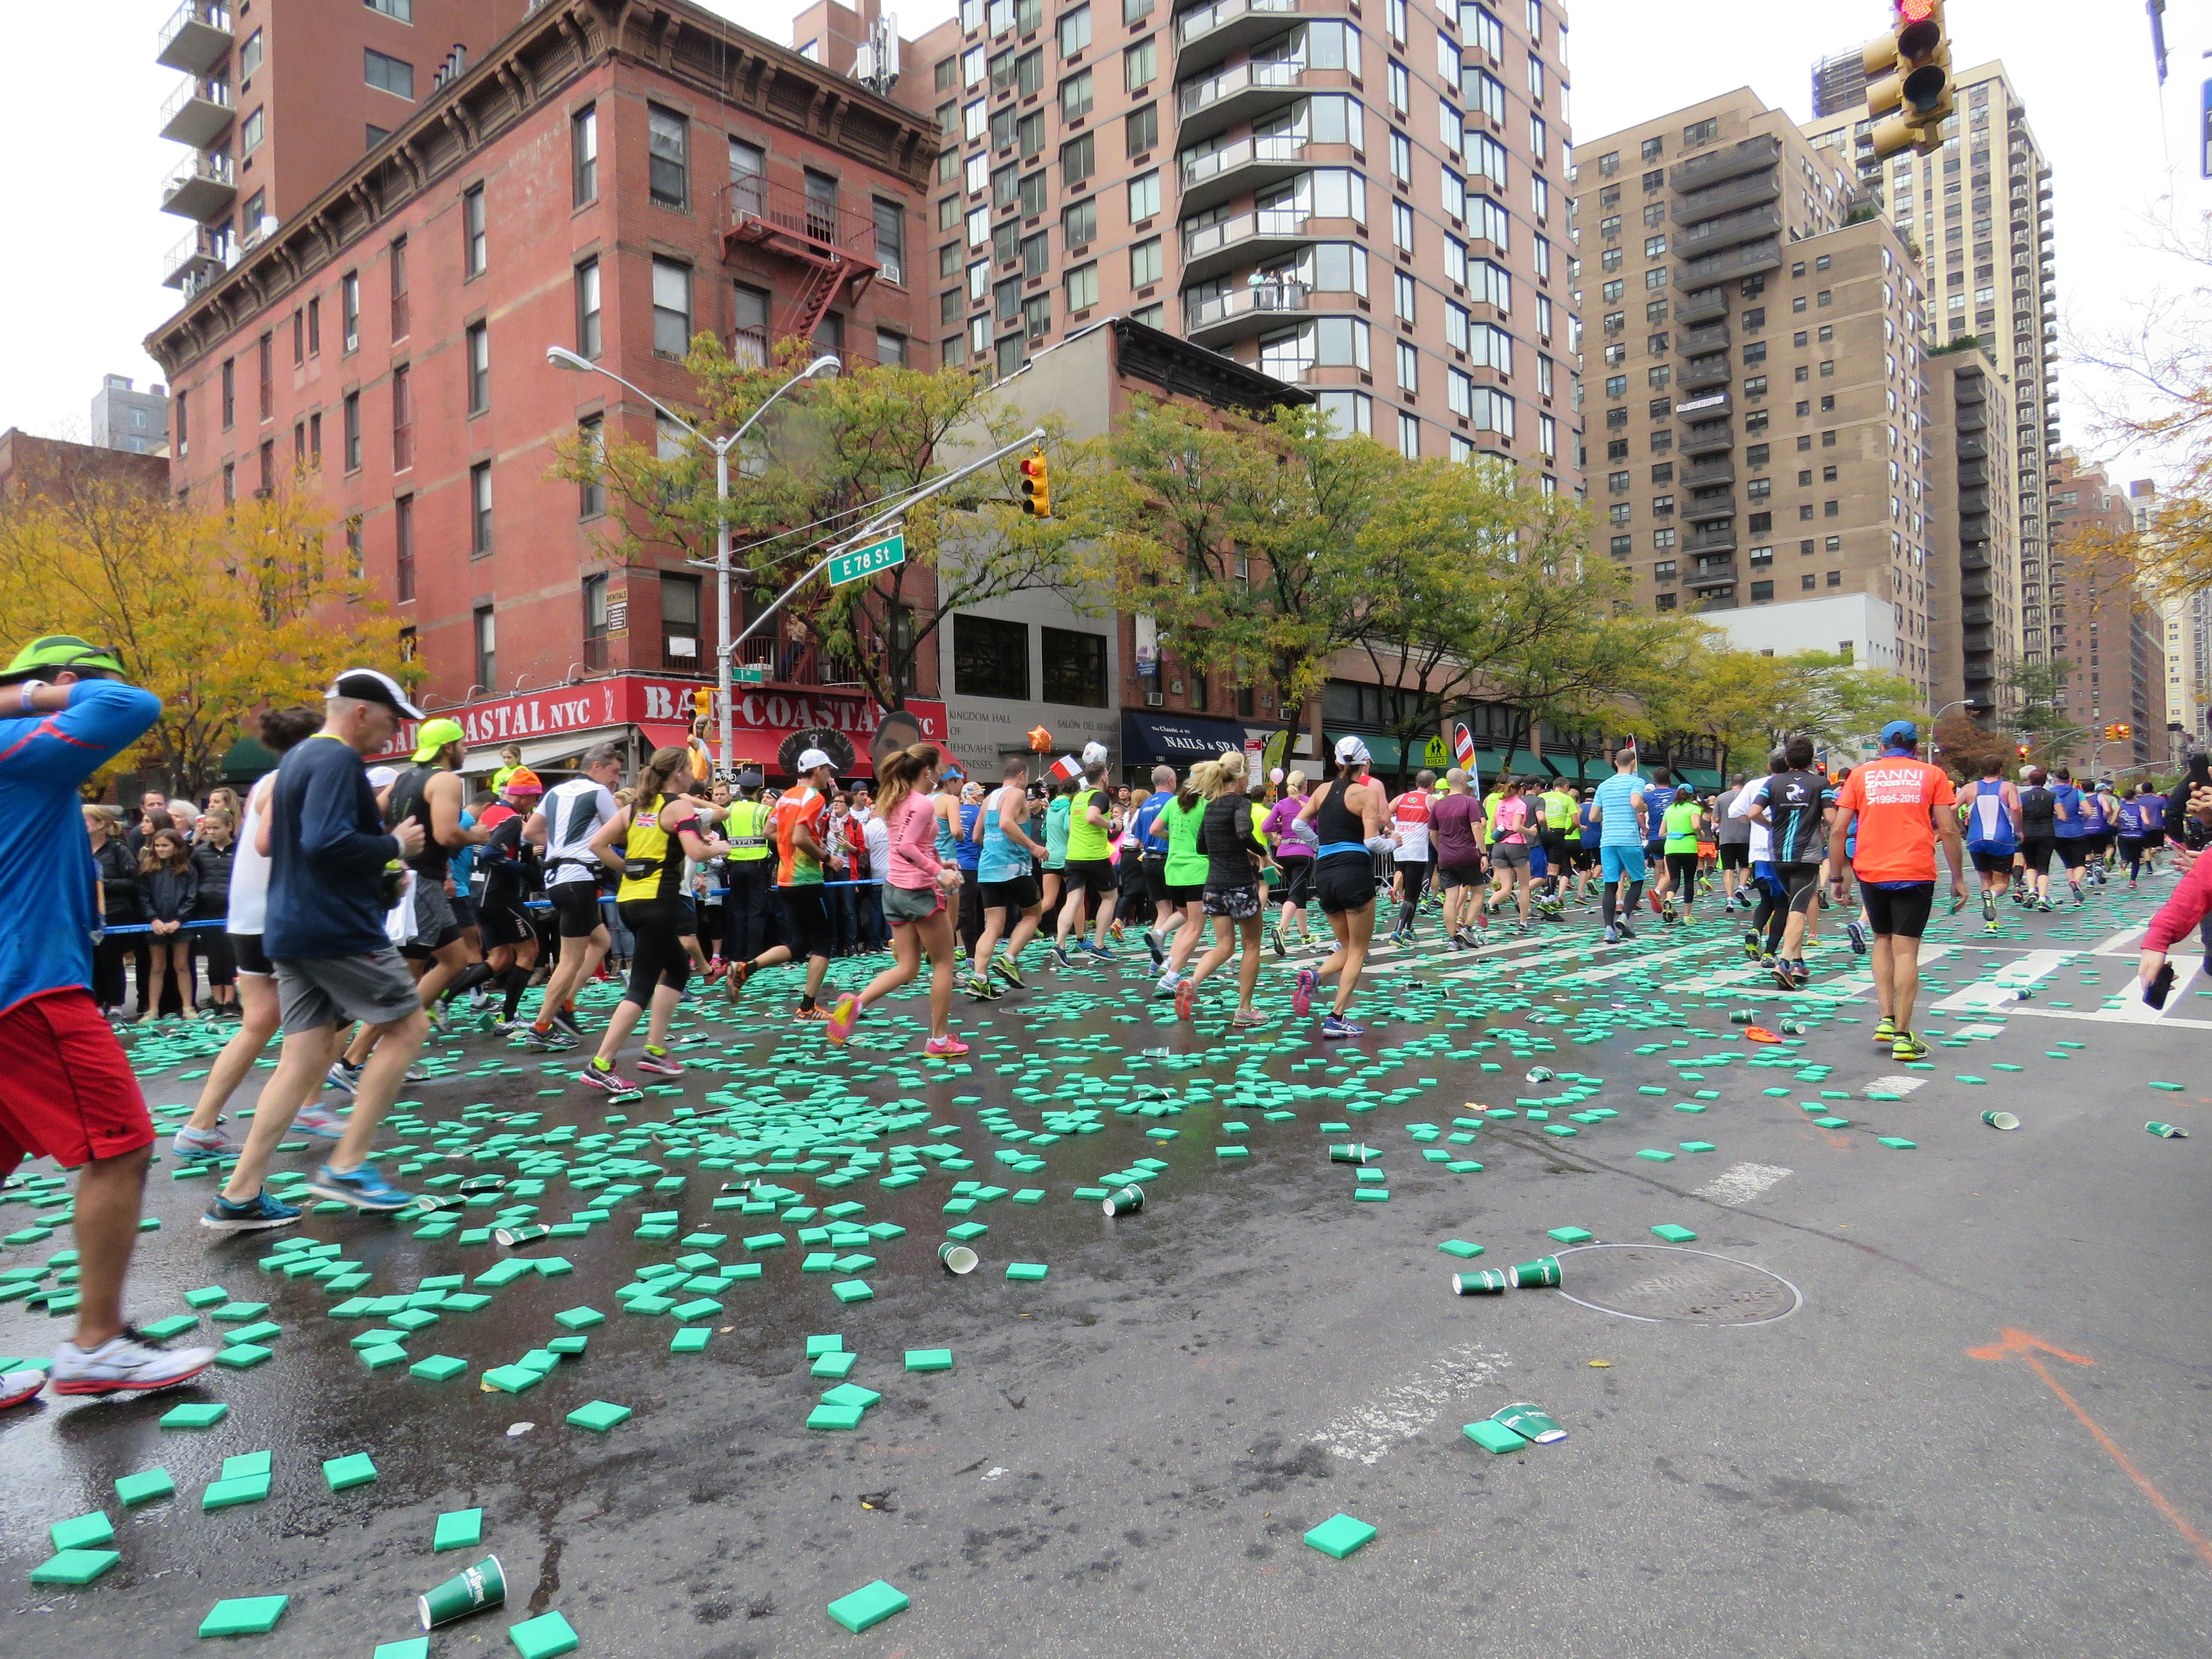 Nyc marathon poland springs offered sponges and water